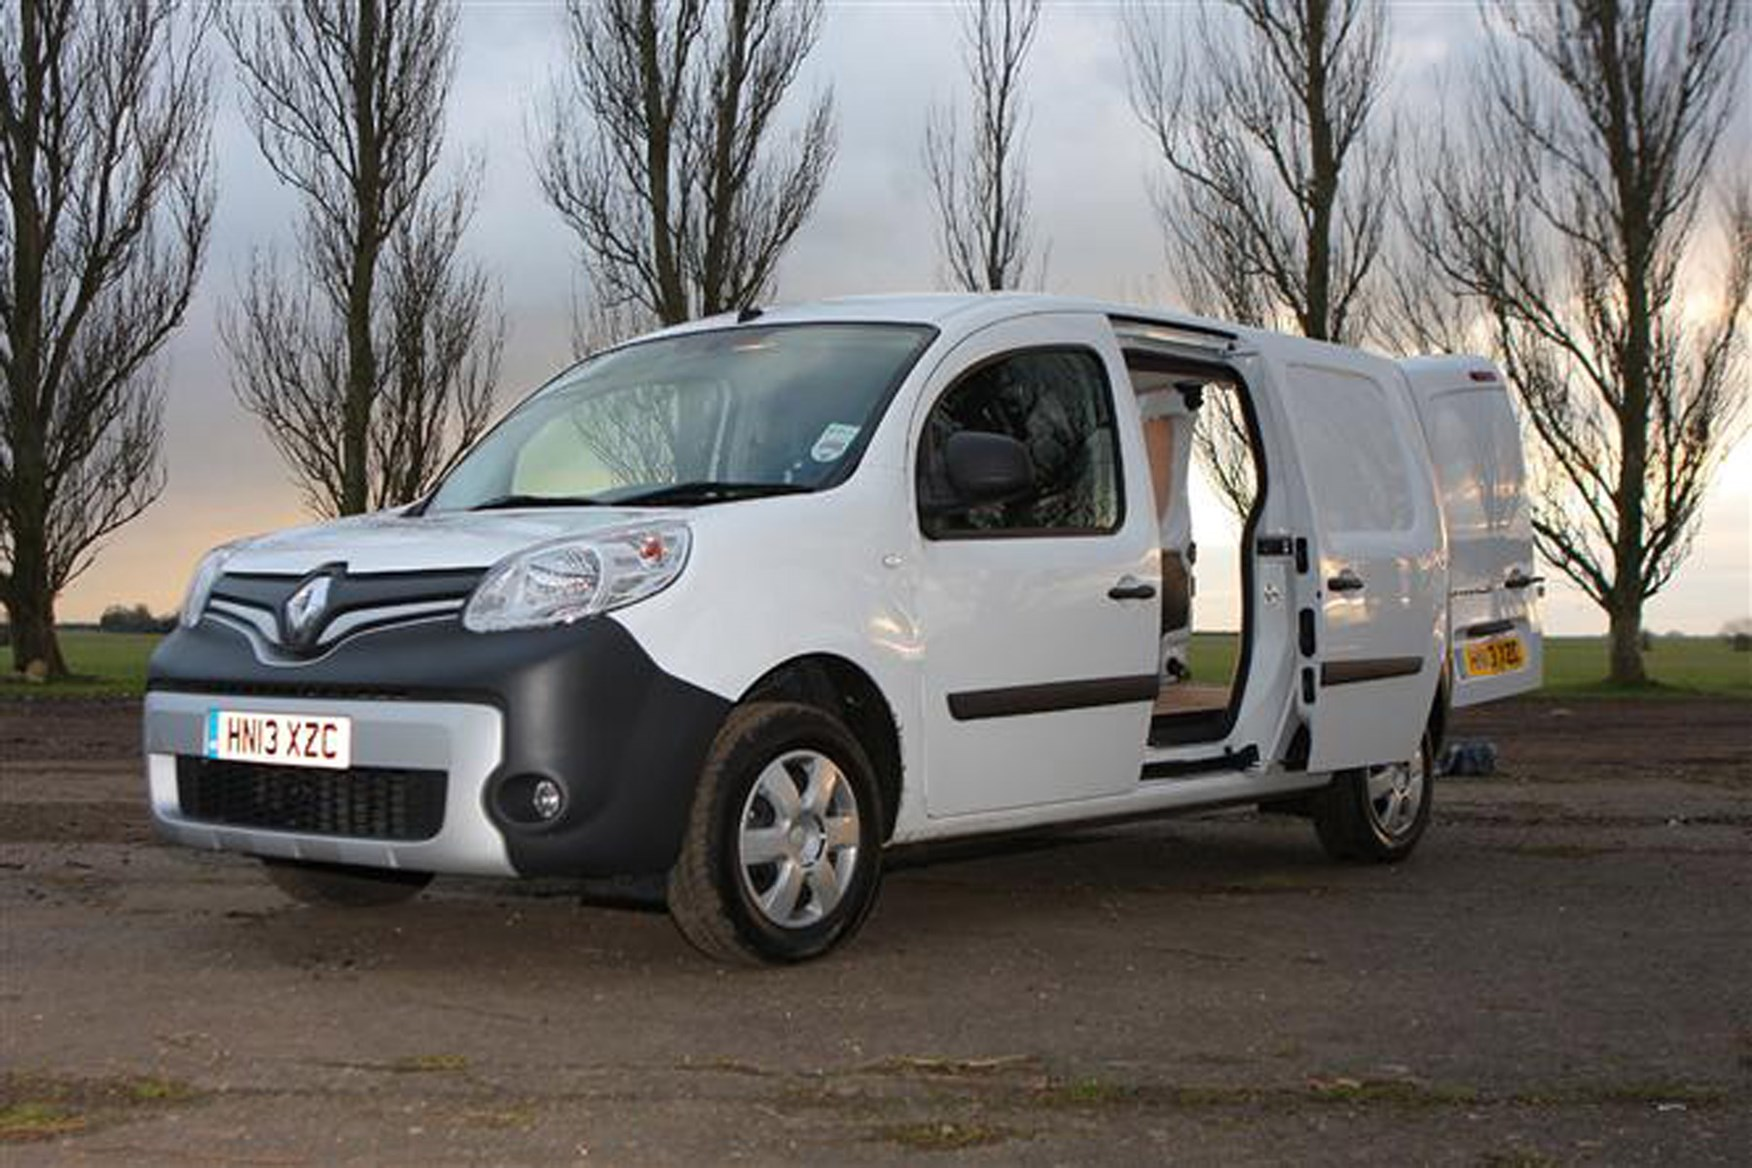 Renault Kangoo full review on Parkers Vans - load area access